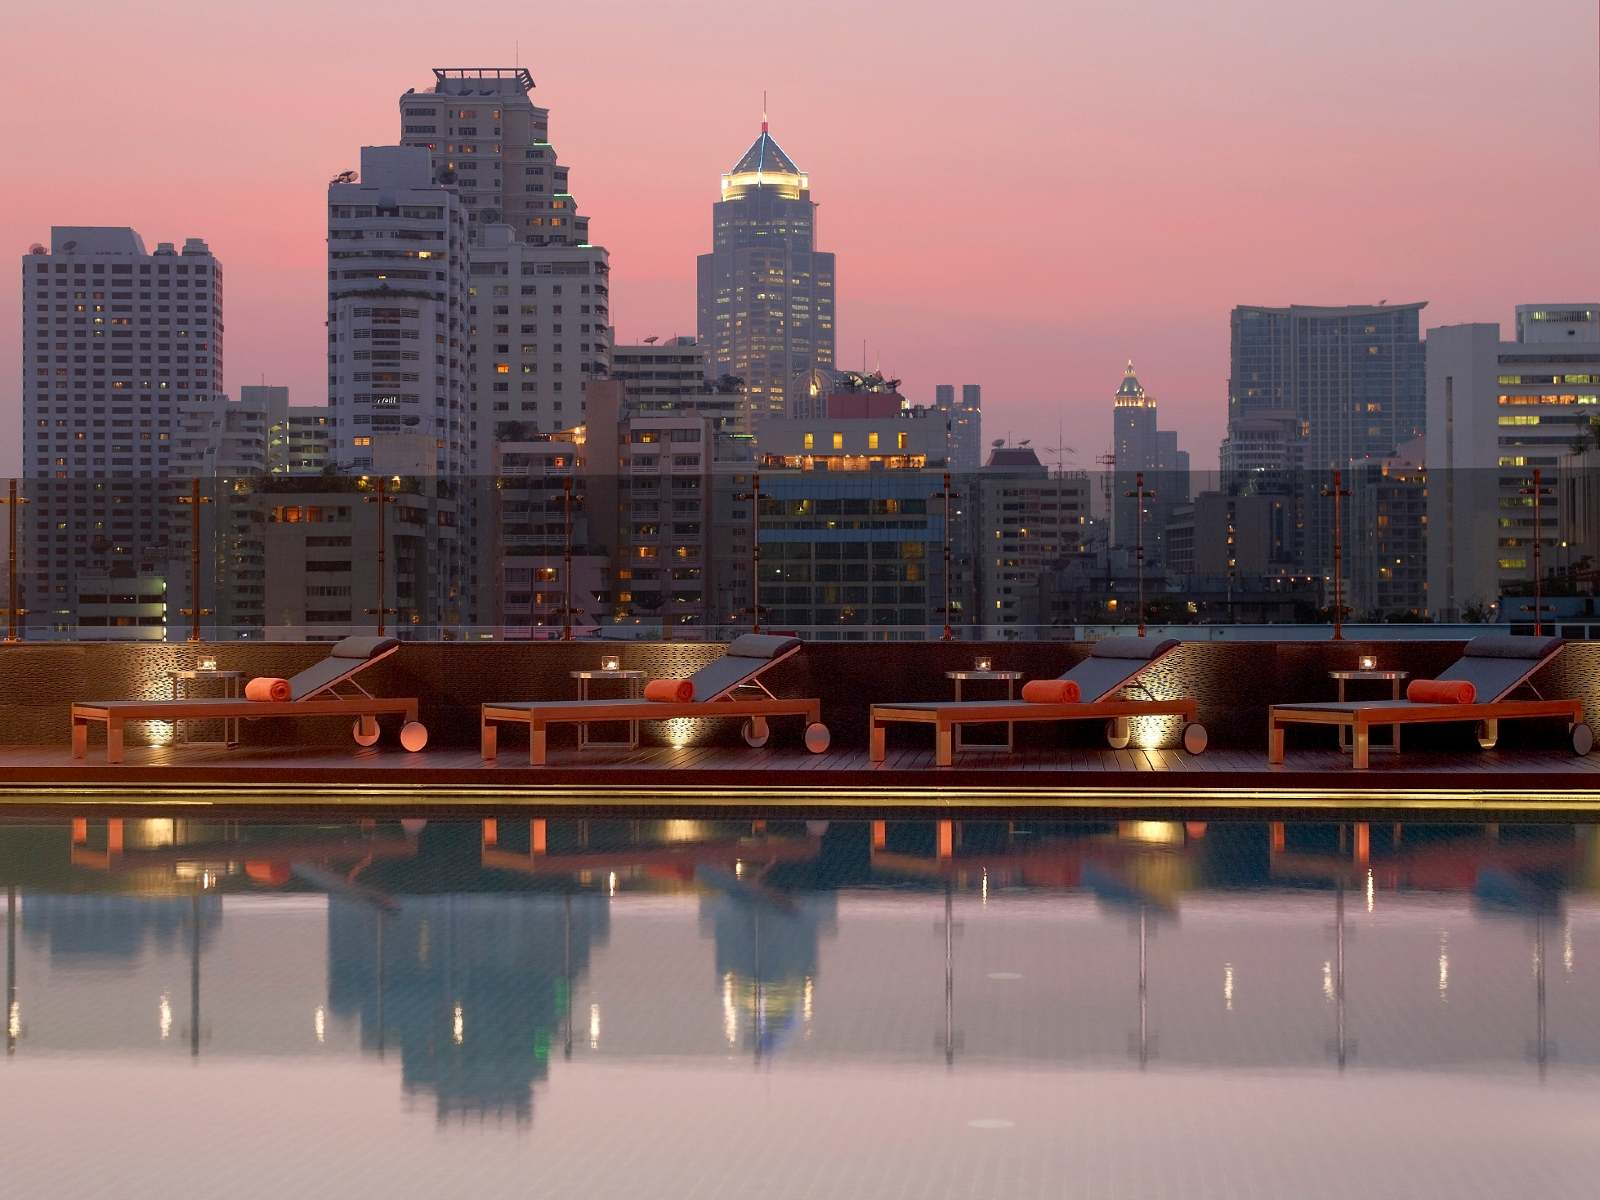 The saltwater pool of The Westin Grande Sukhumvit in the Asok area of Bangkok, Thailand